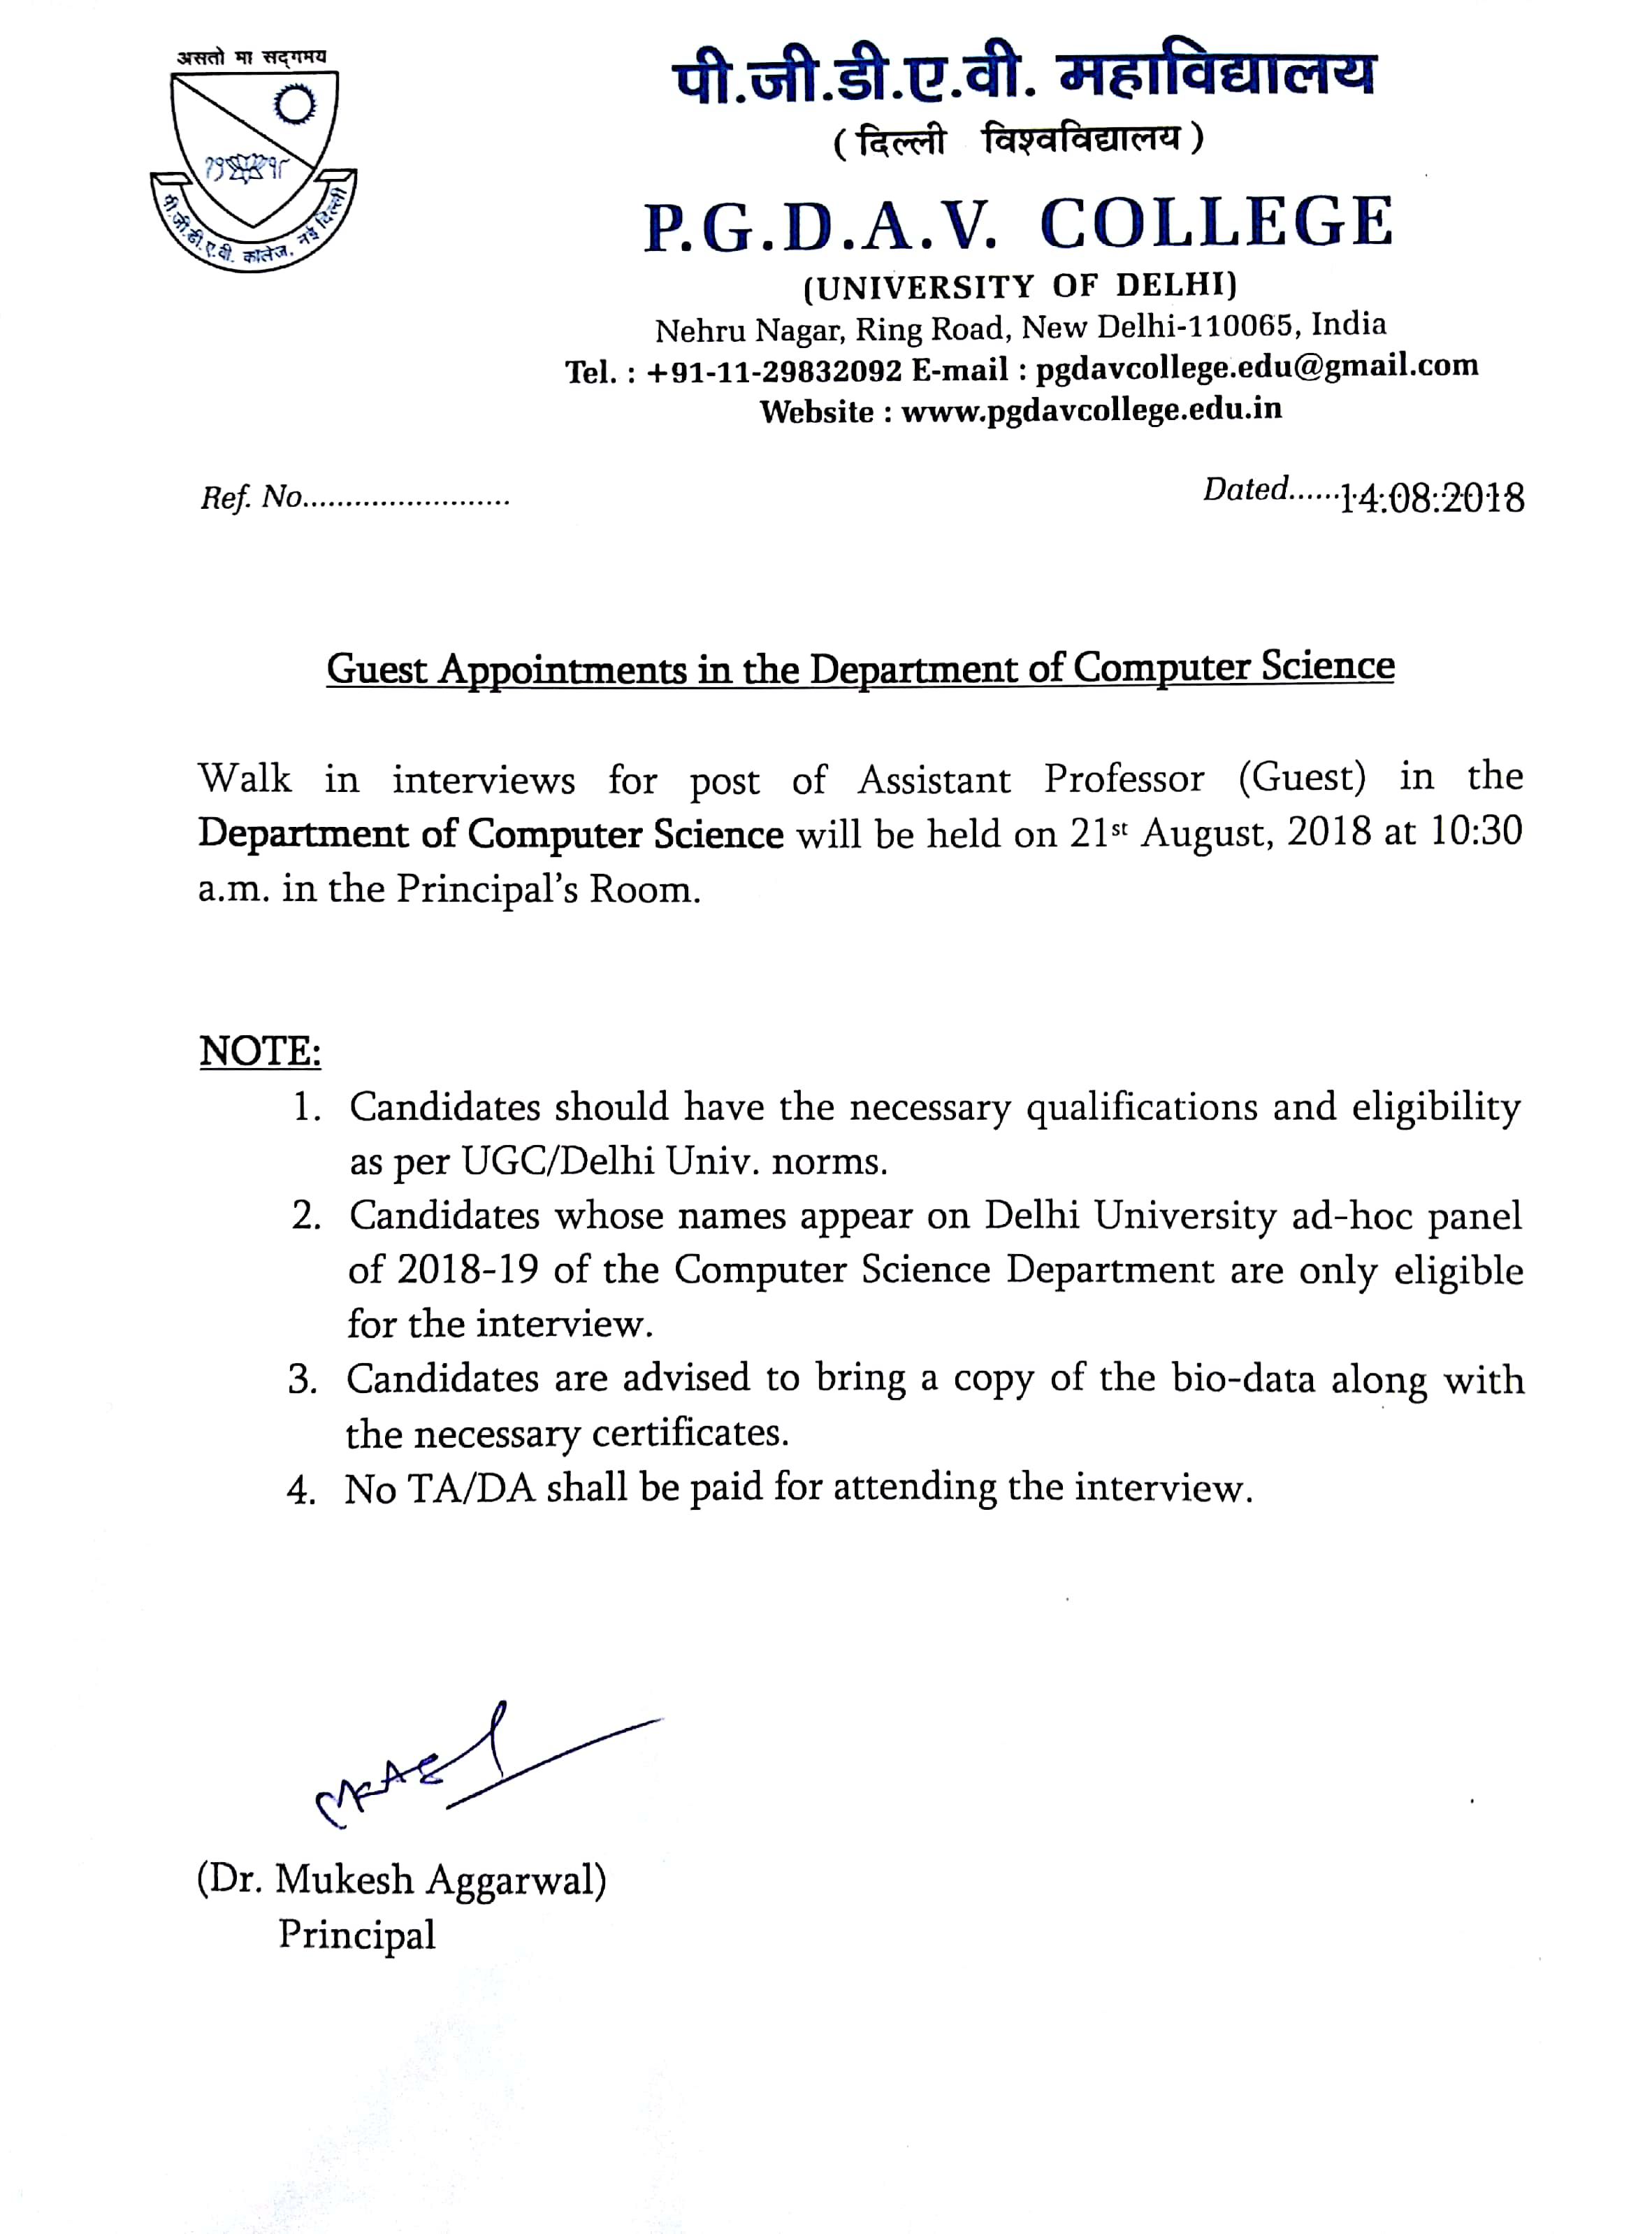 Du Ad Hoc Application Form 2017, Non Teaching Employees Are Advised To Apply For Promotion, Du Ad Hoc Application Form 2017